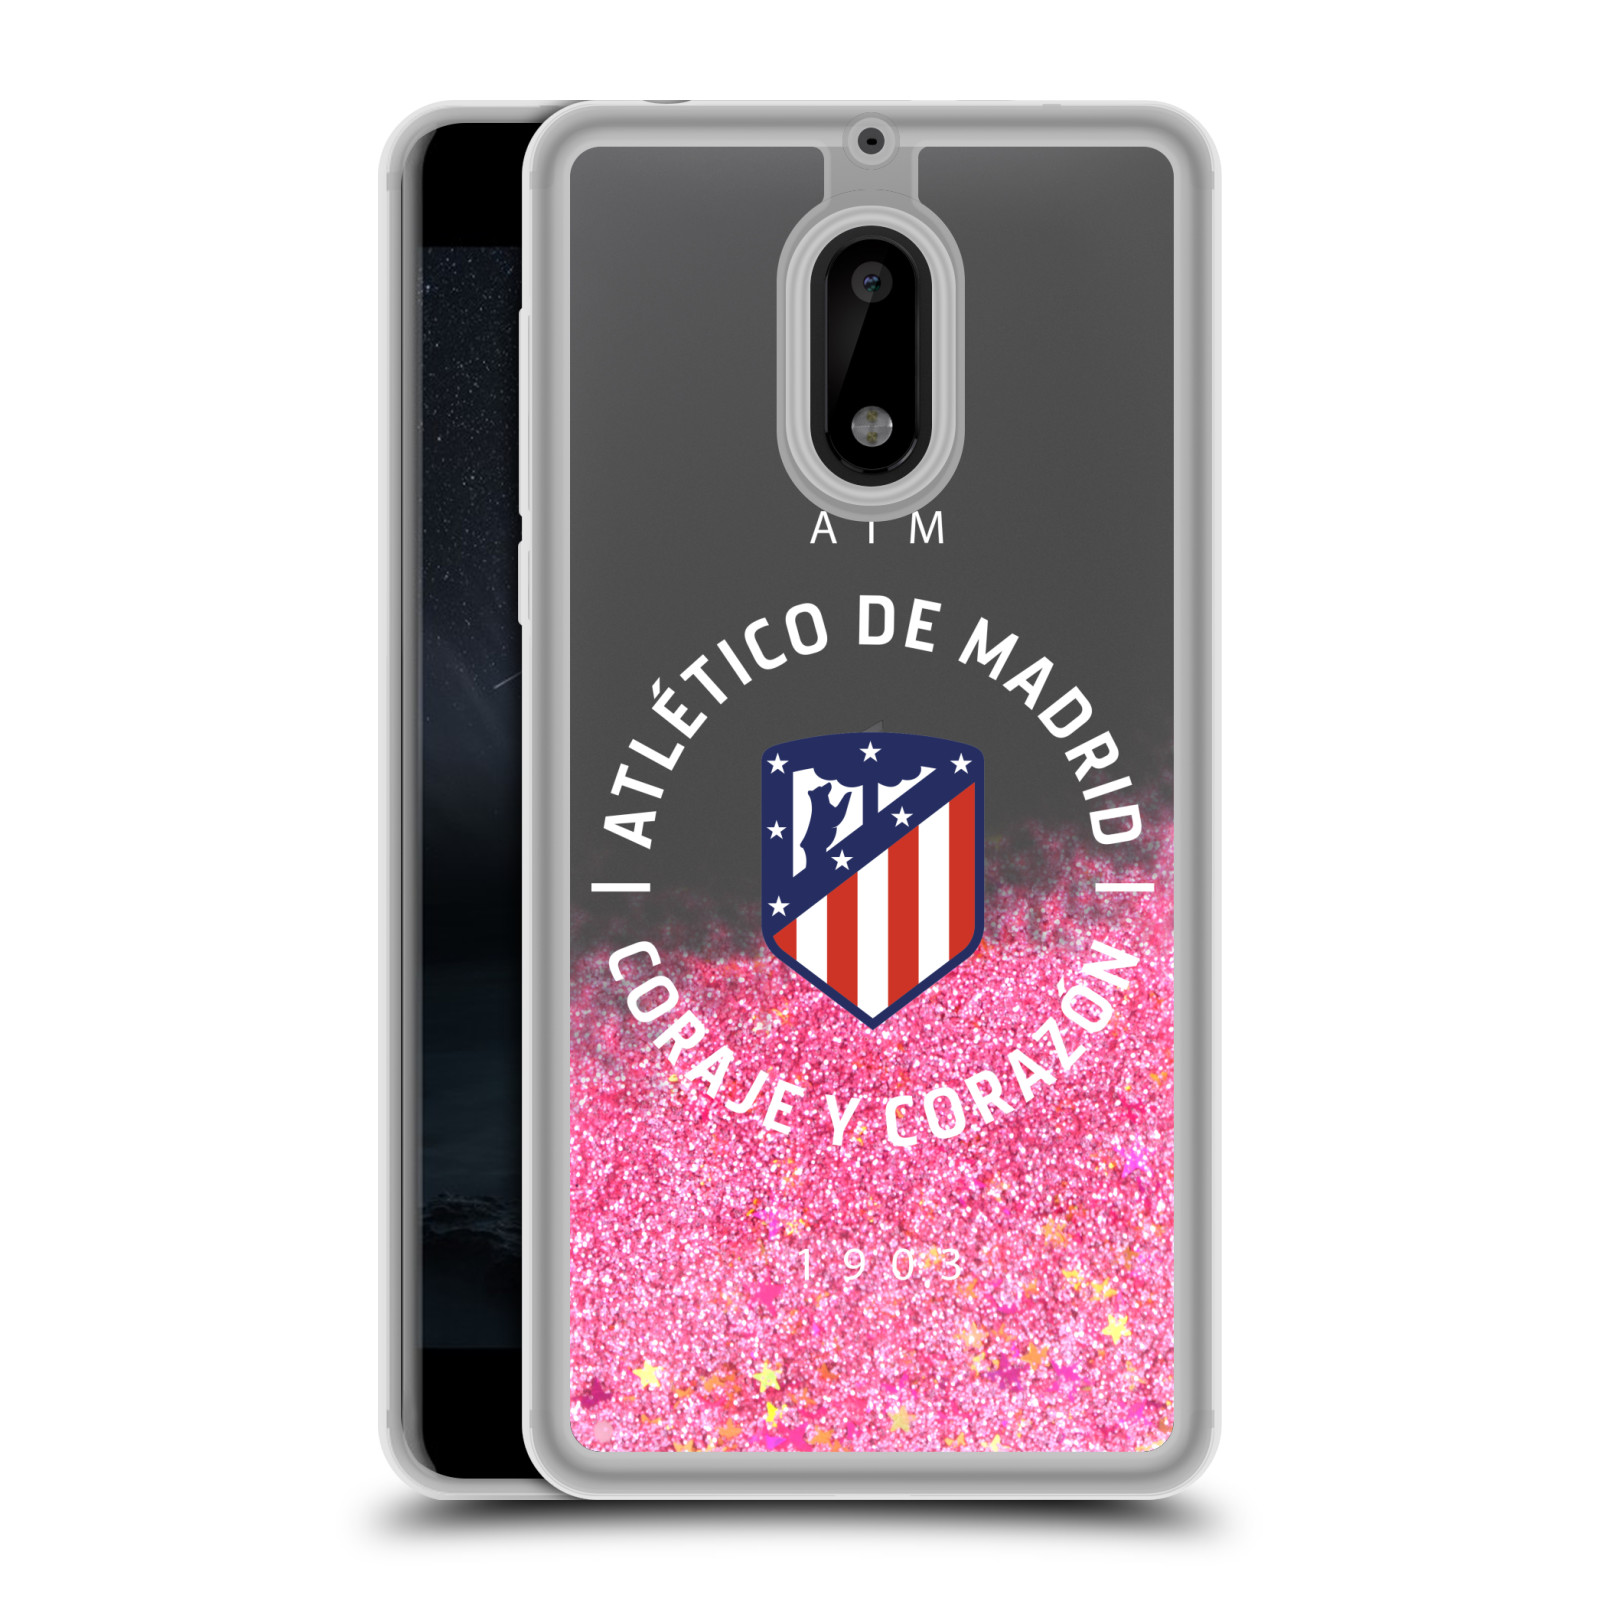 ATLETICO-MADRID-VARIOUS-DESIGNS-LIGHT-PINK-HYBRID-LIQUID-GLITTER-FOR-NOKIA-PHONE